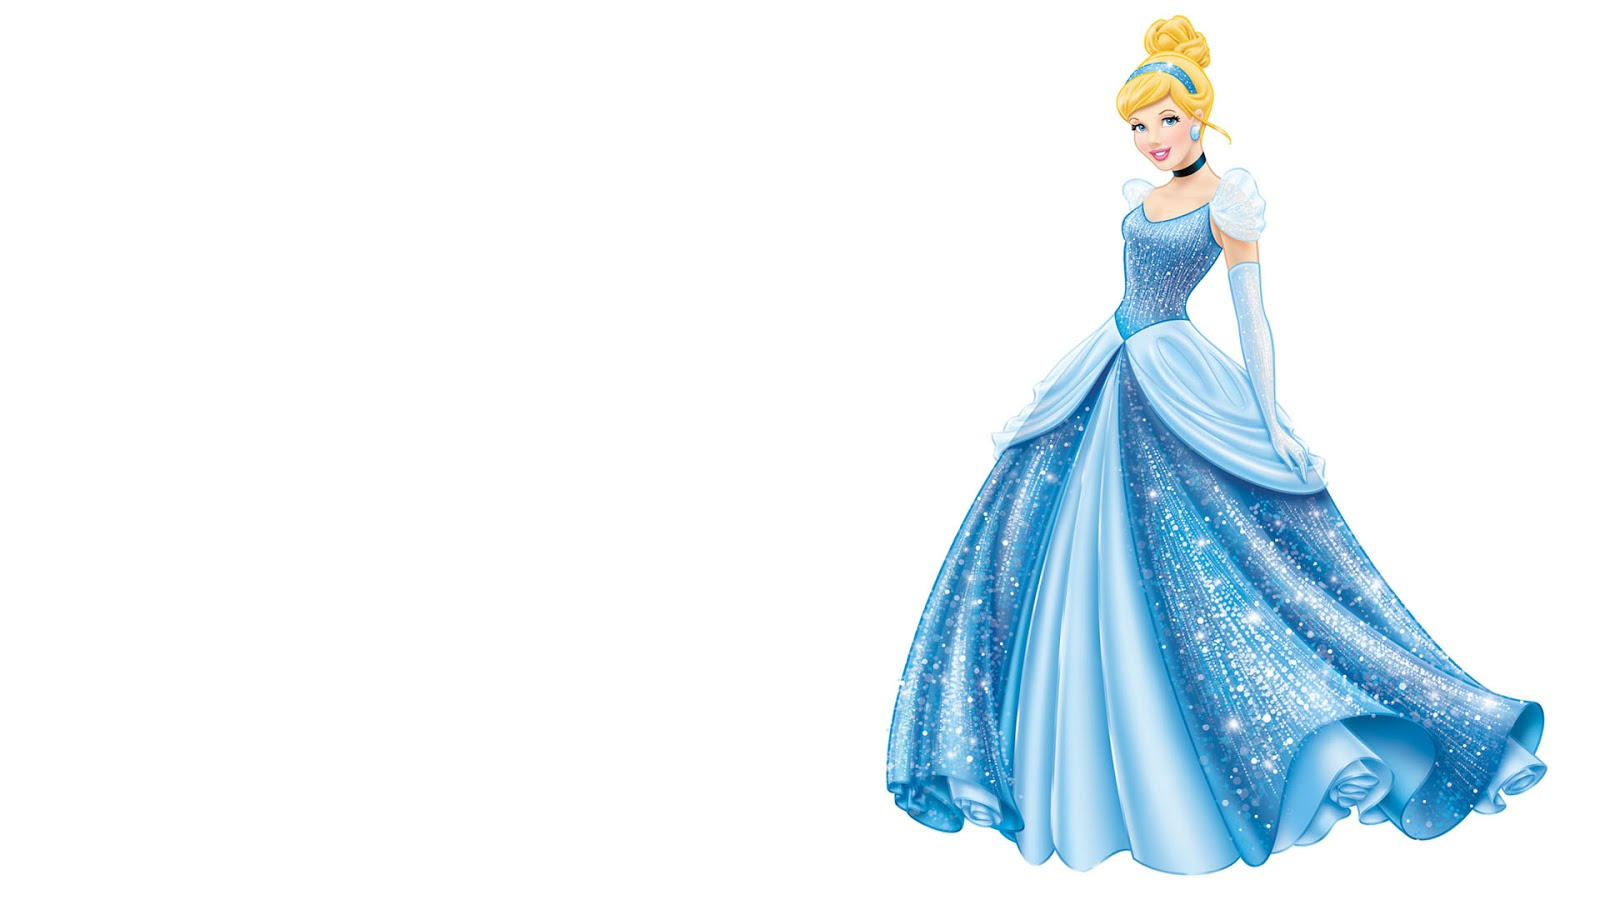 Cinderella wallpaper 15968 1600x900 px hdwallsource cinderella wallpaper 15968 thecheapjerseys